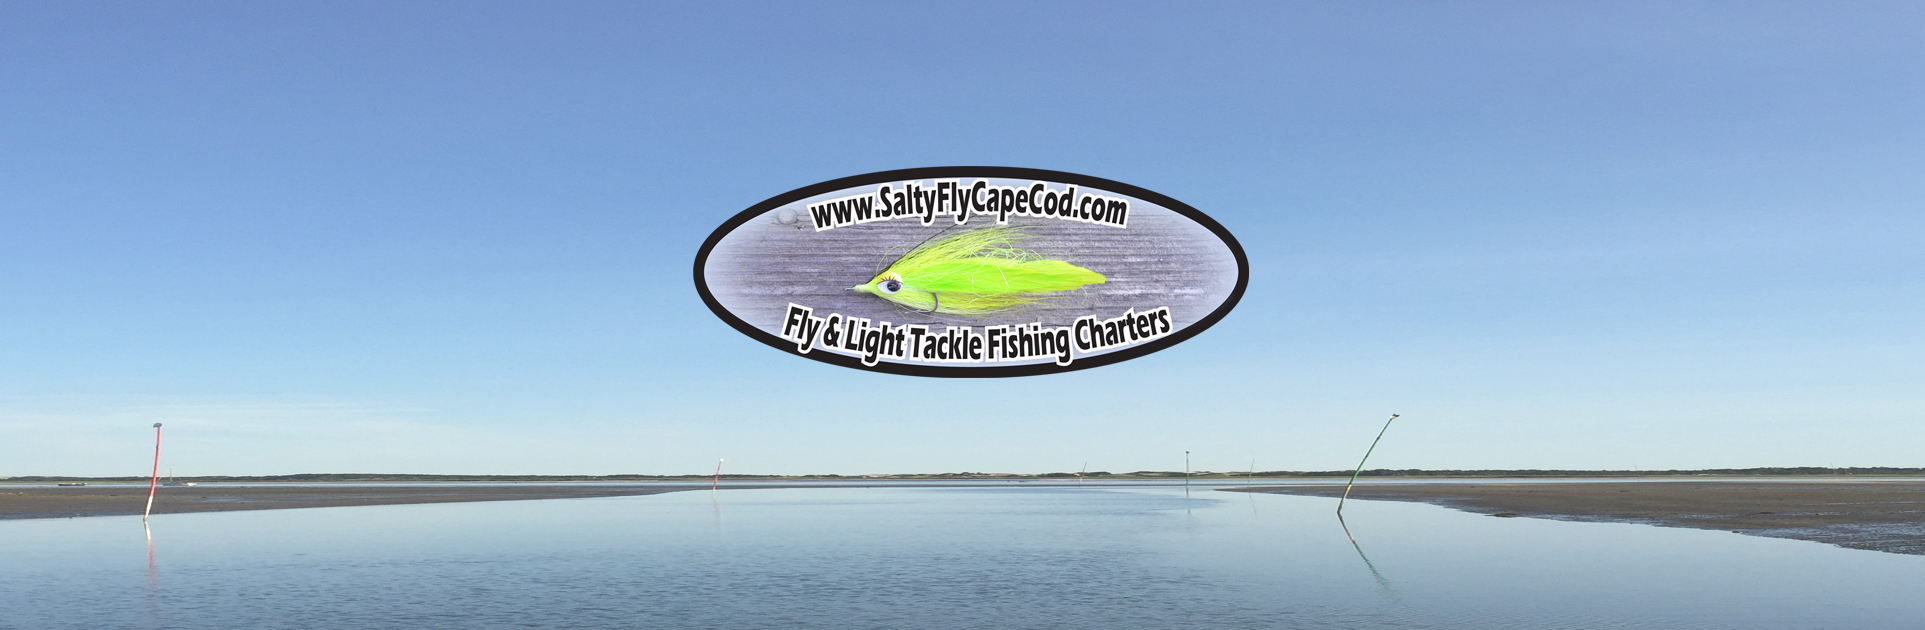 Salty Fly Cape Cod Fishing Charters Logo